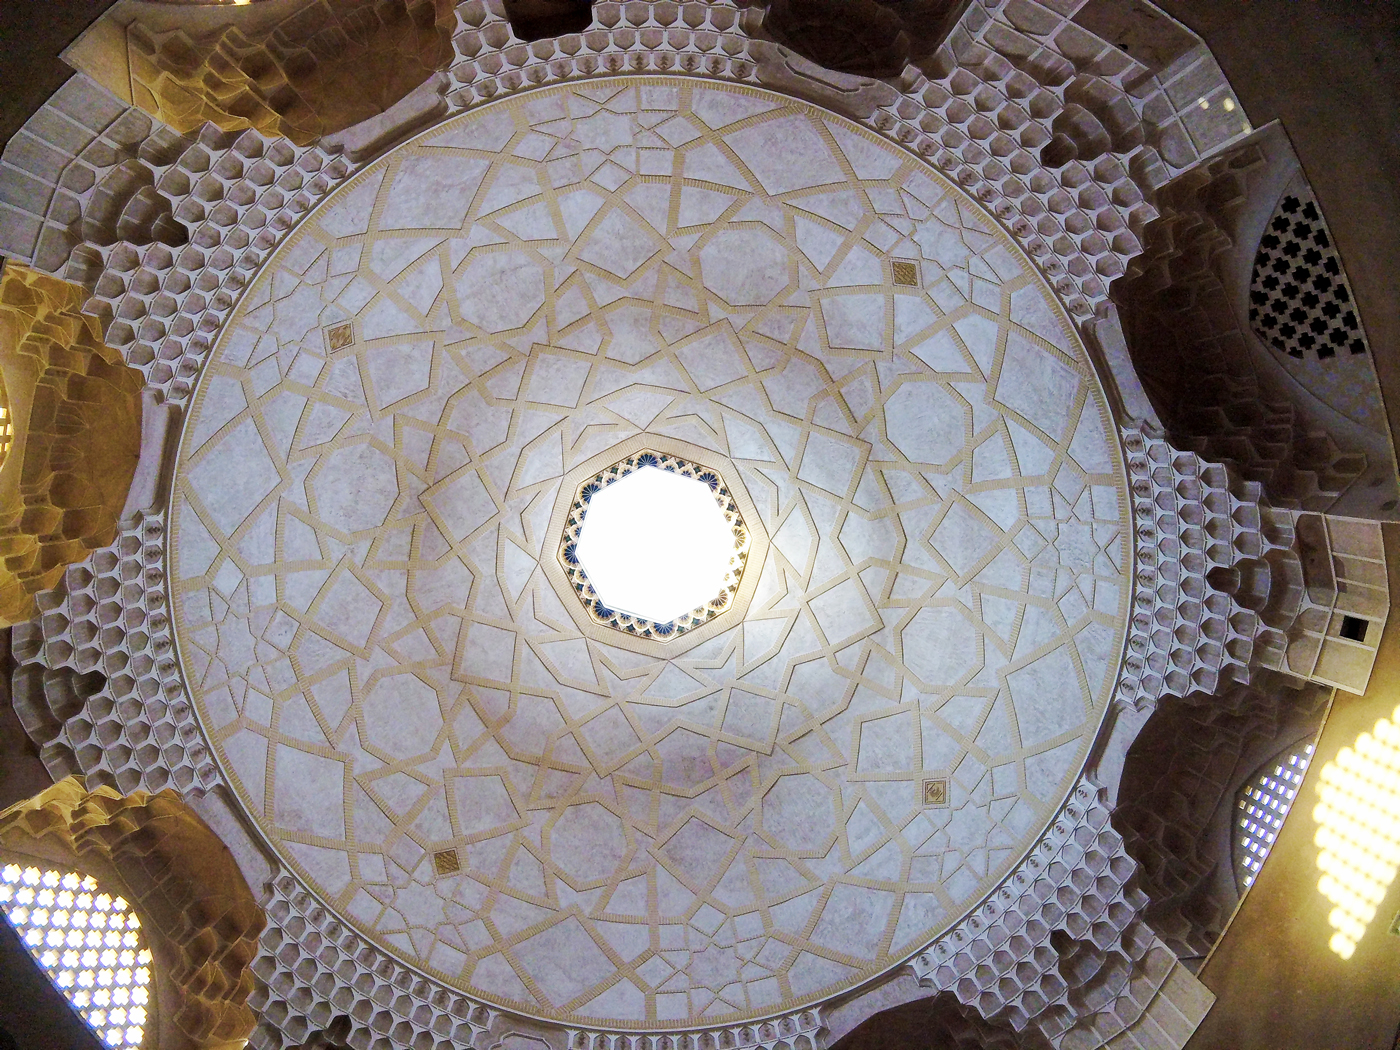 Bike trip, cross Iran by bike, beautiful ceiling in the Bazaar of the city of Yazd. Cycling travel, biketouring, cycling Iran, beautiful Bazaar ceiling in the old part of the Yazd city.